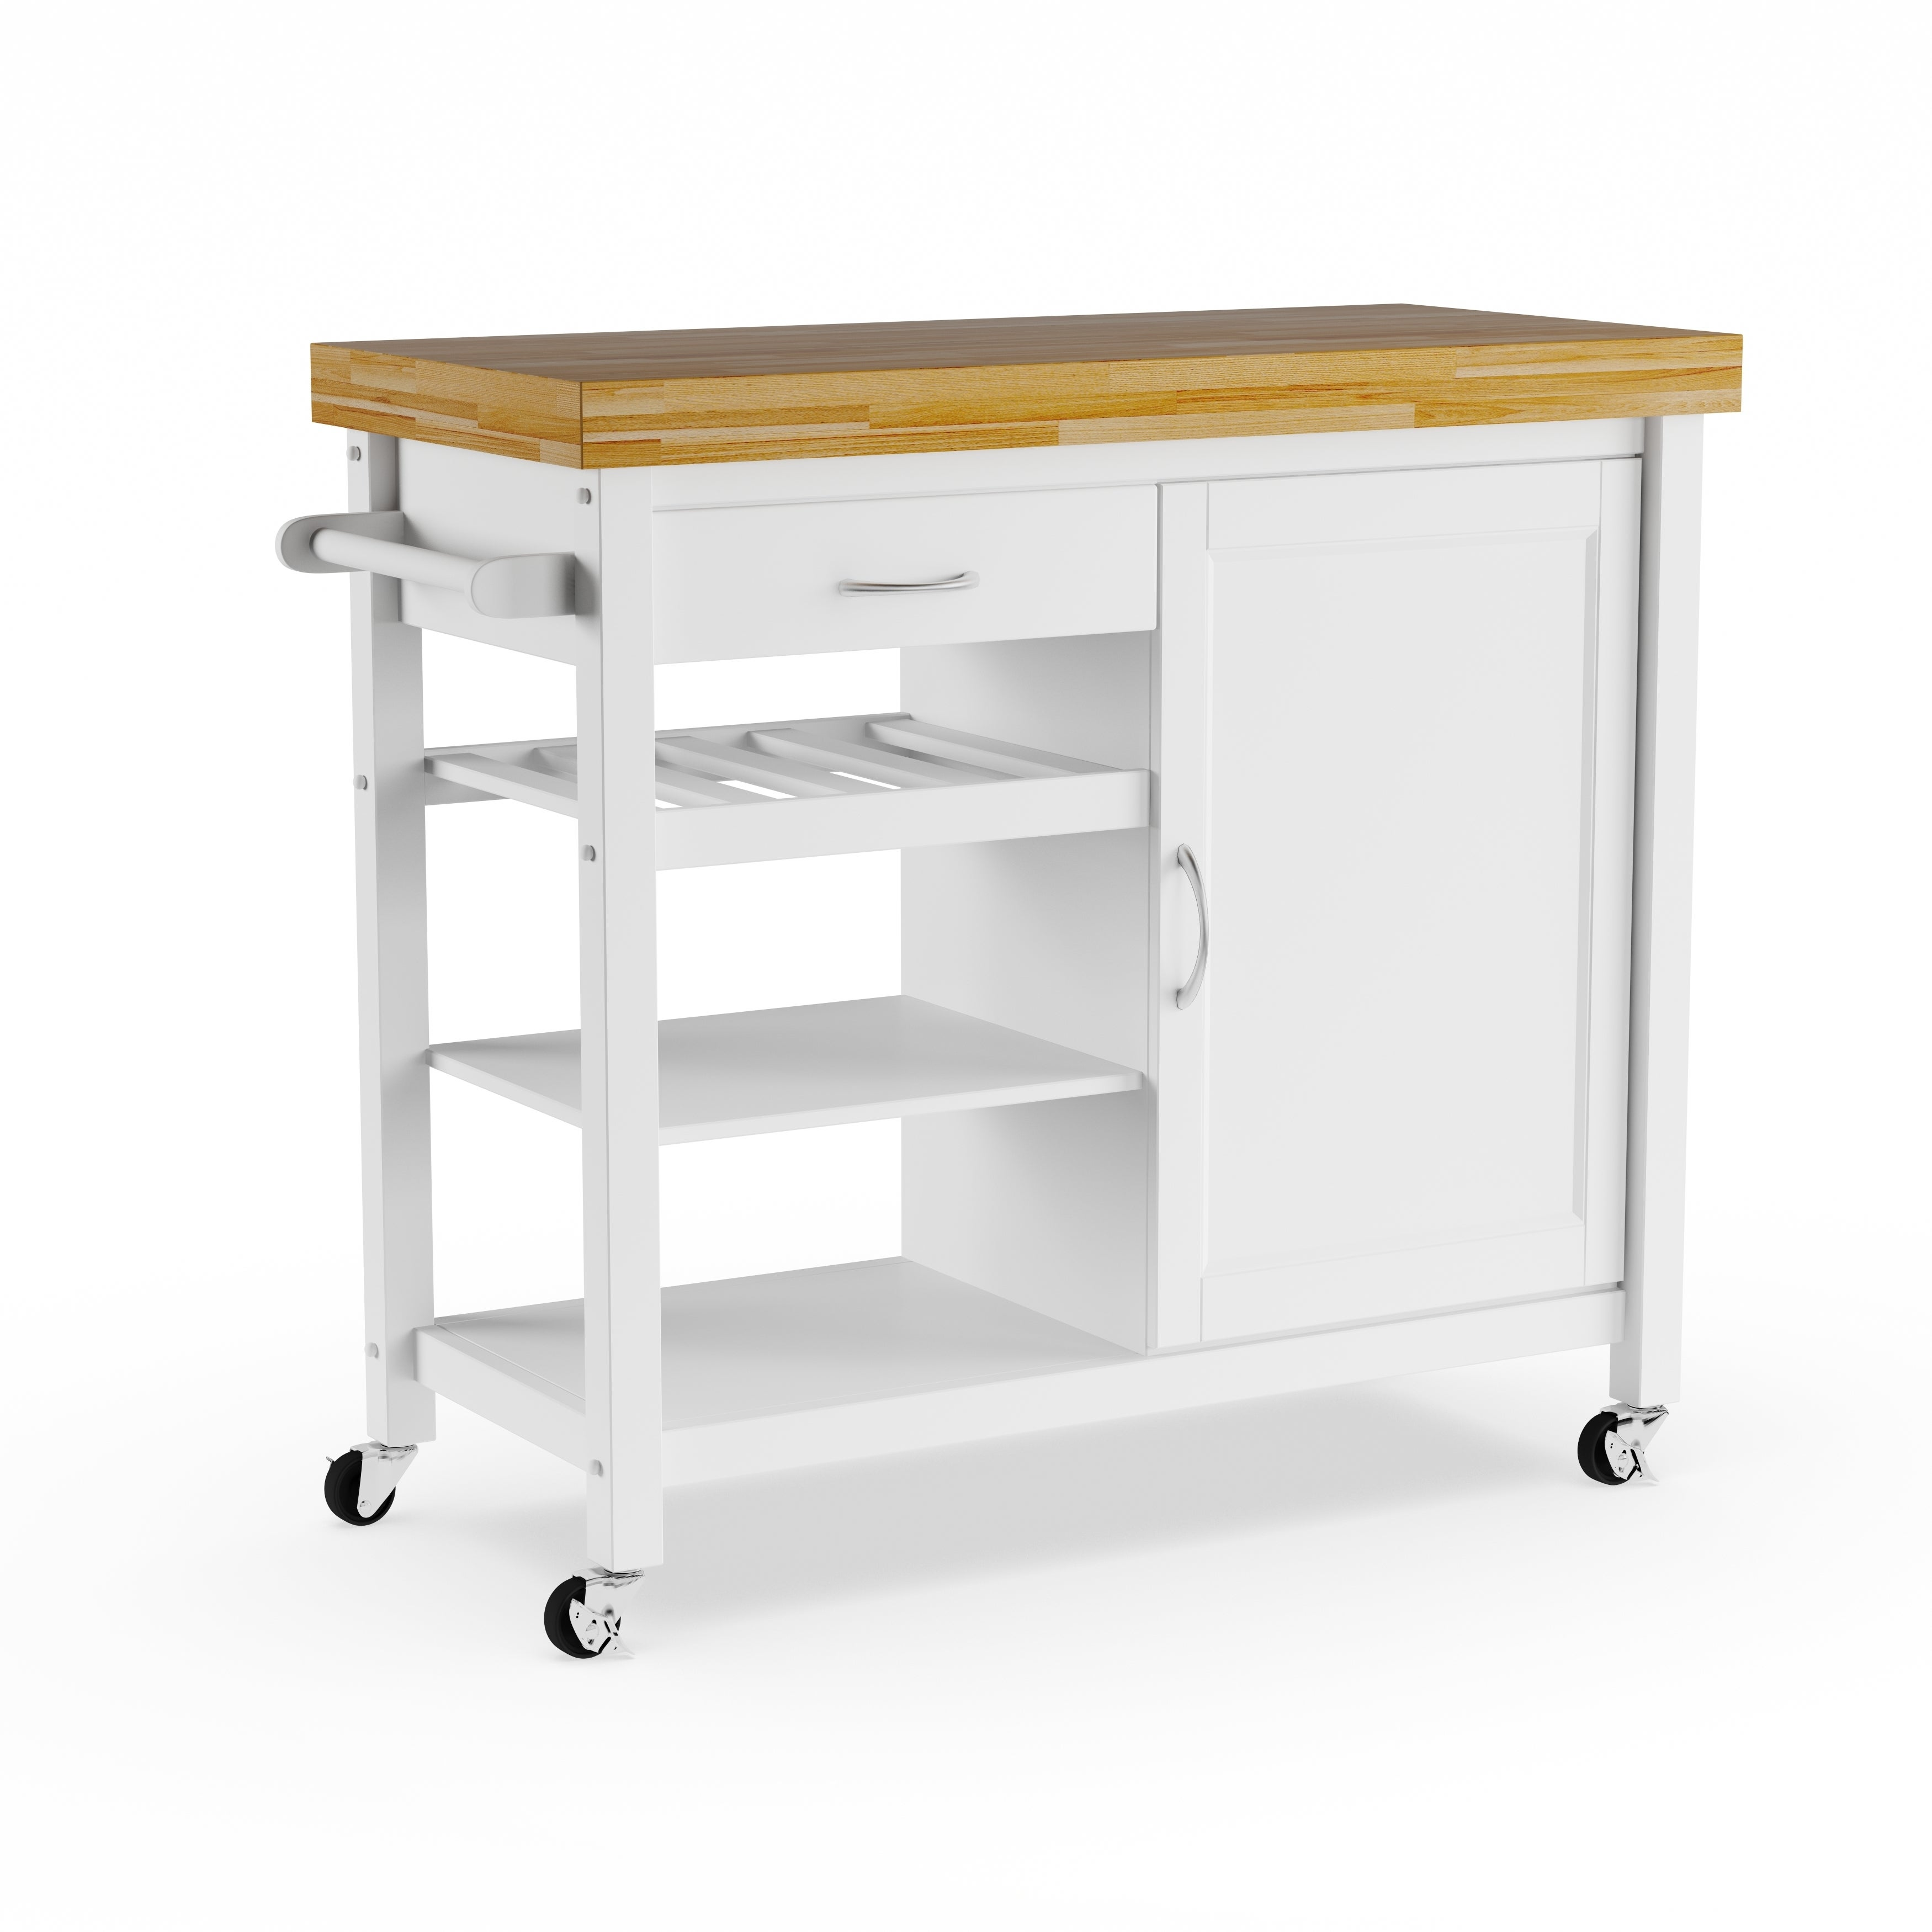 Shop Denver White Modern Kitchen Cart - Free Shipping Today - Overstock - 20543359  sc 1 st  Overstock.com & Shop Denver White Modern Kitchen Cart - Free Shipping Today ...